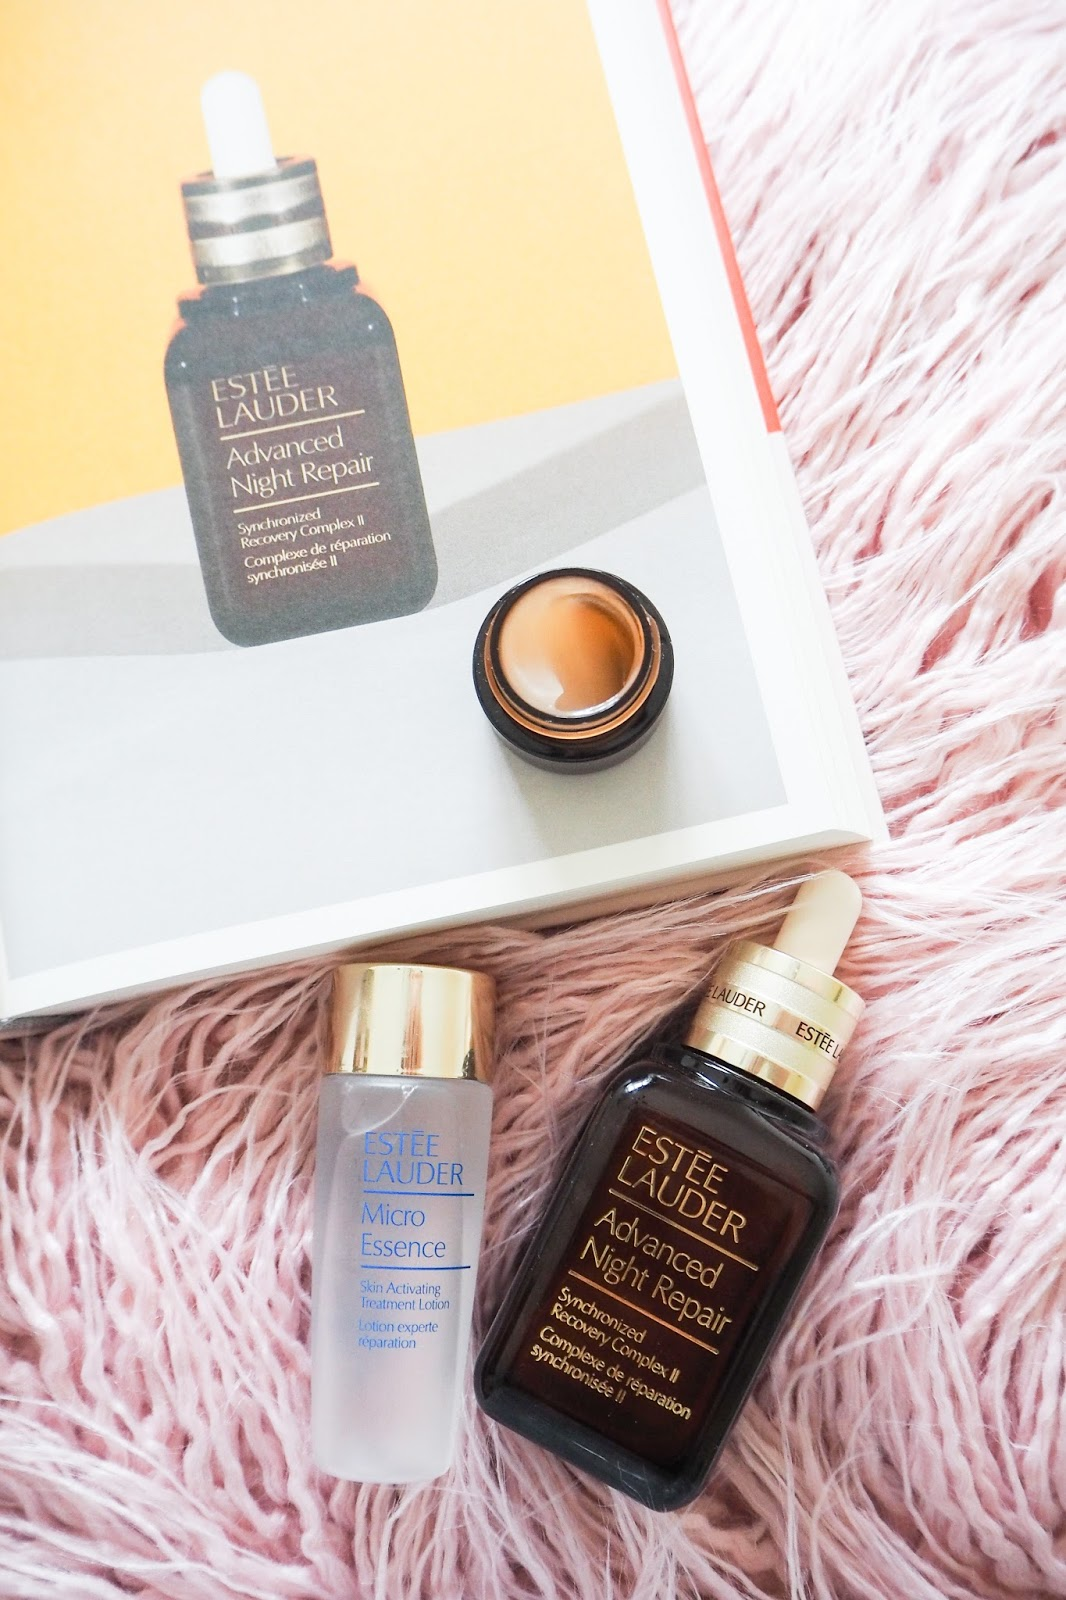 Estee Lauder Advanced Night Repair Serum and Eye Cream and Mirco Essence